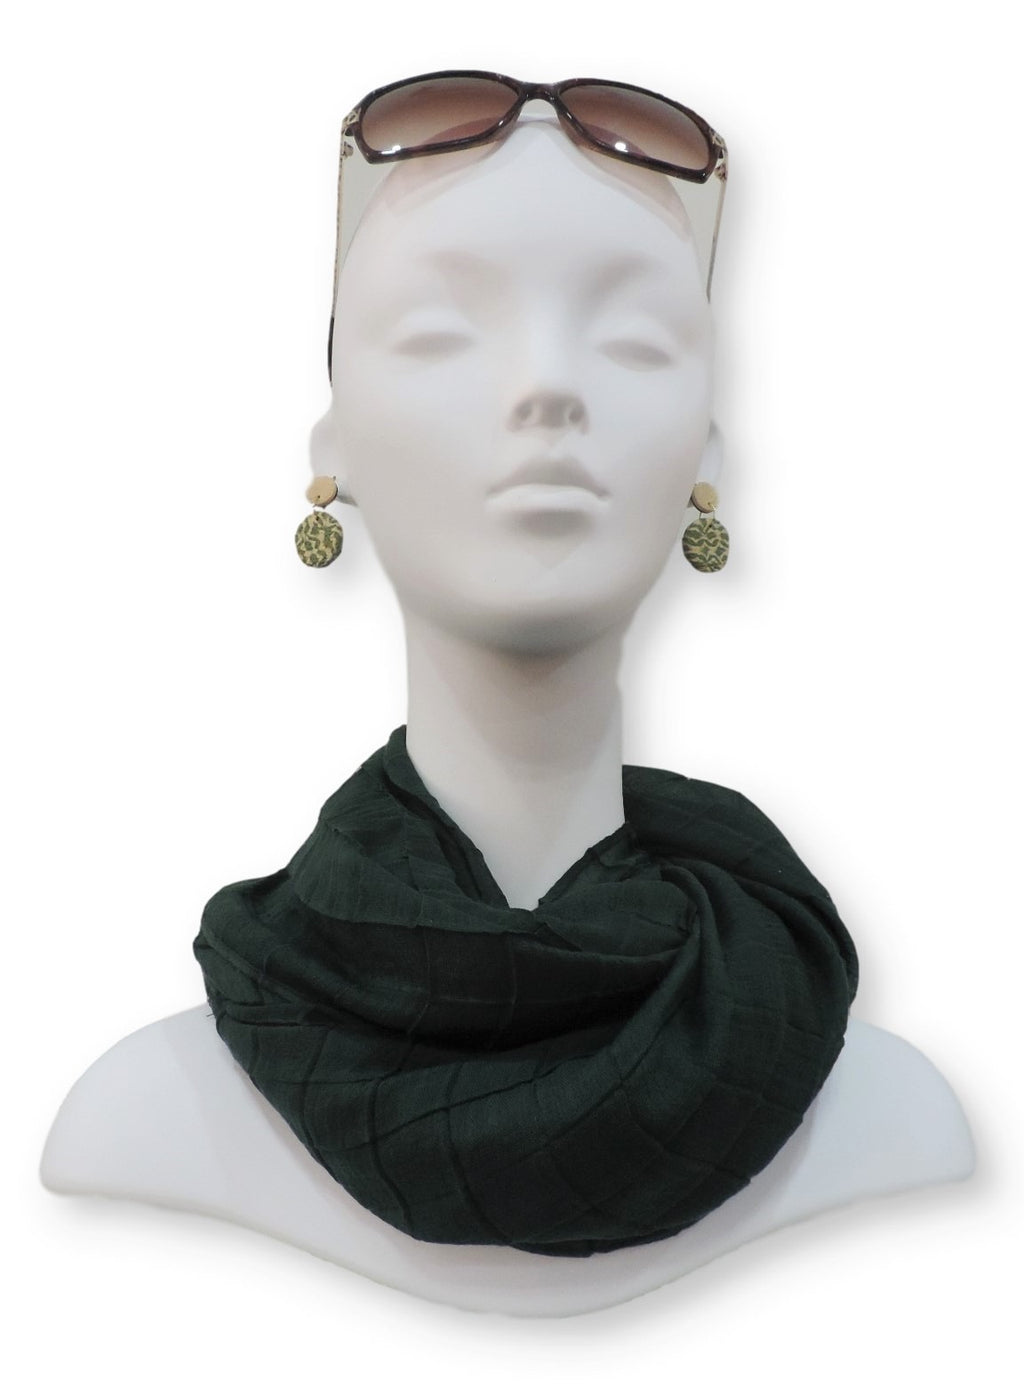 Tertiary Green Cotton Pleated Scarf - Global Trendz Fashion®